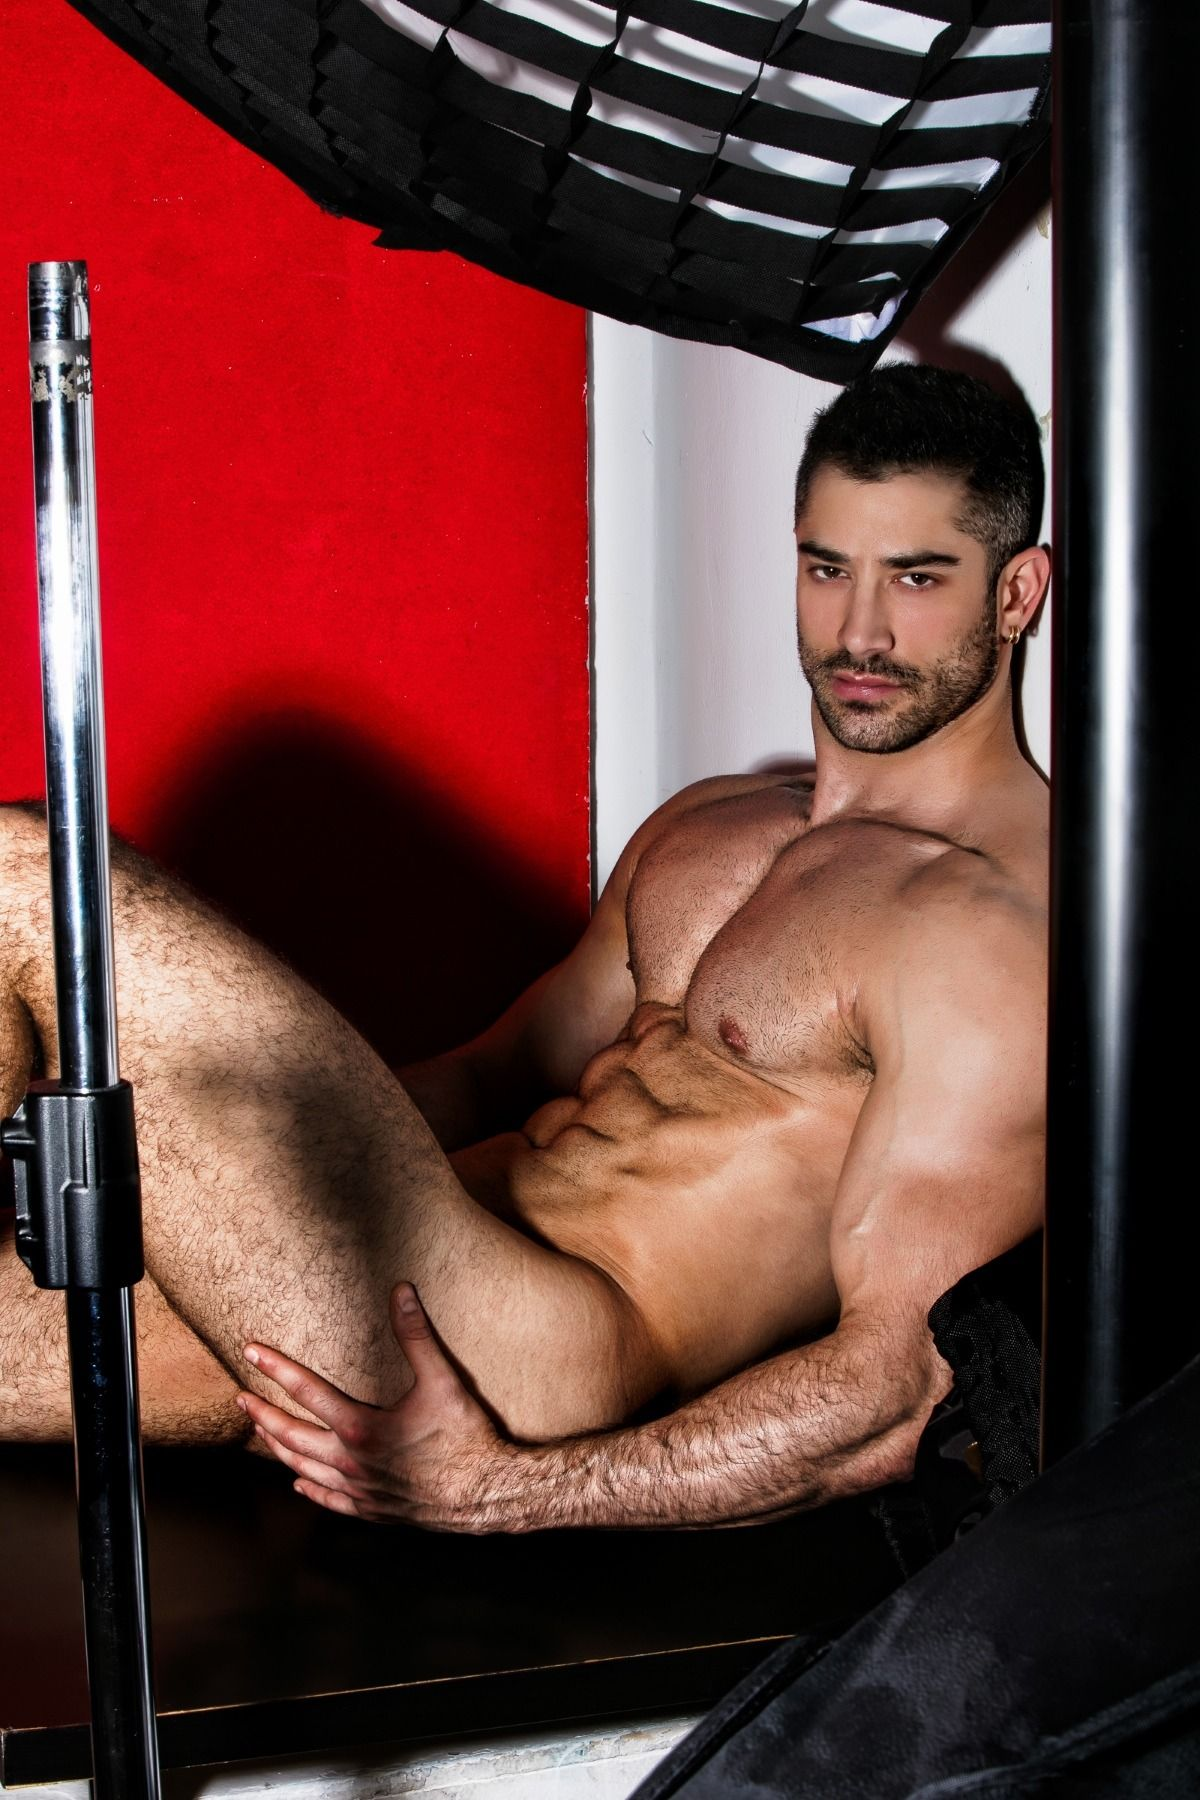 Wanna Make U Cum And Feel Inside Of Me Homotography Exclusive Jonathan Guijarro By